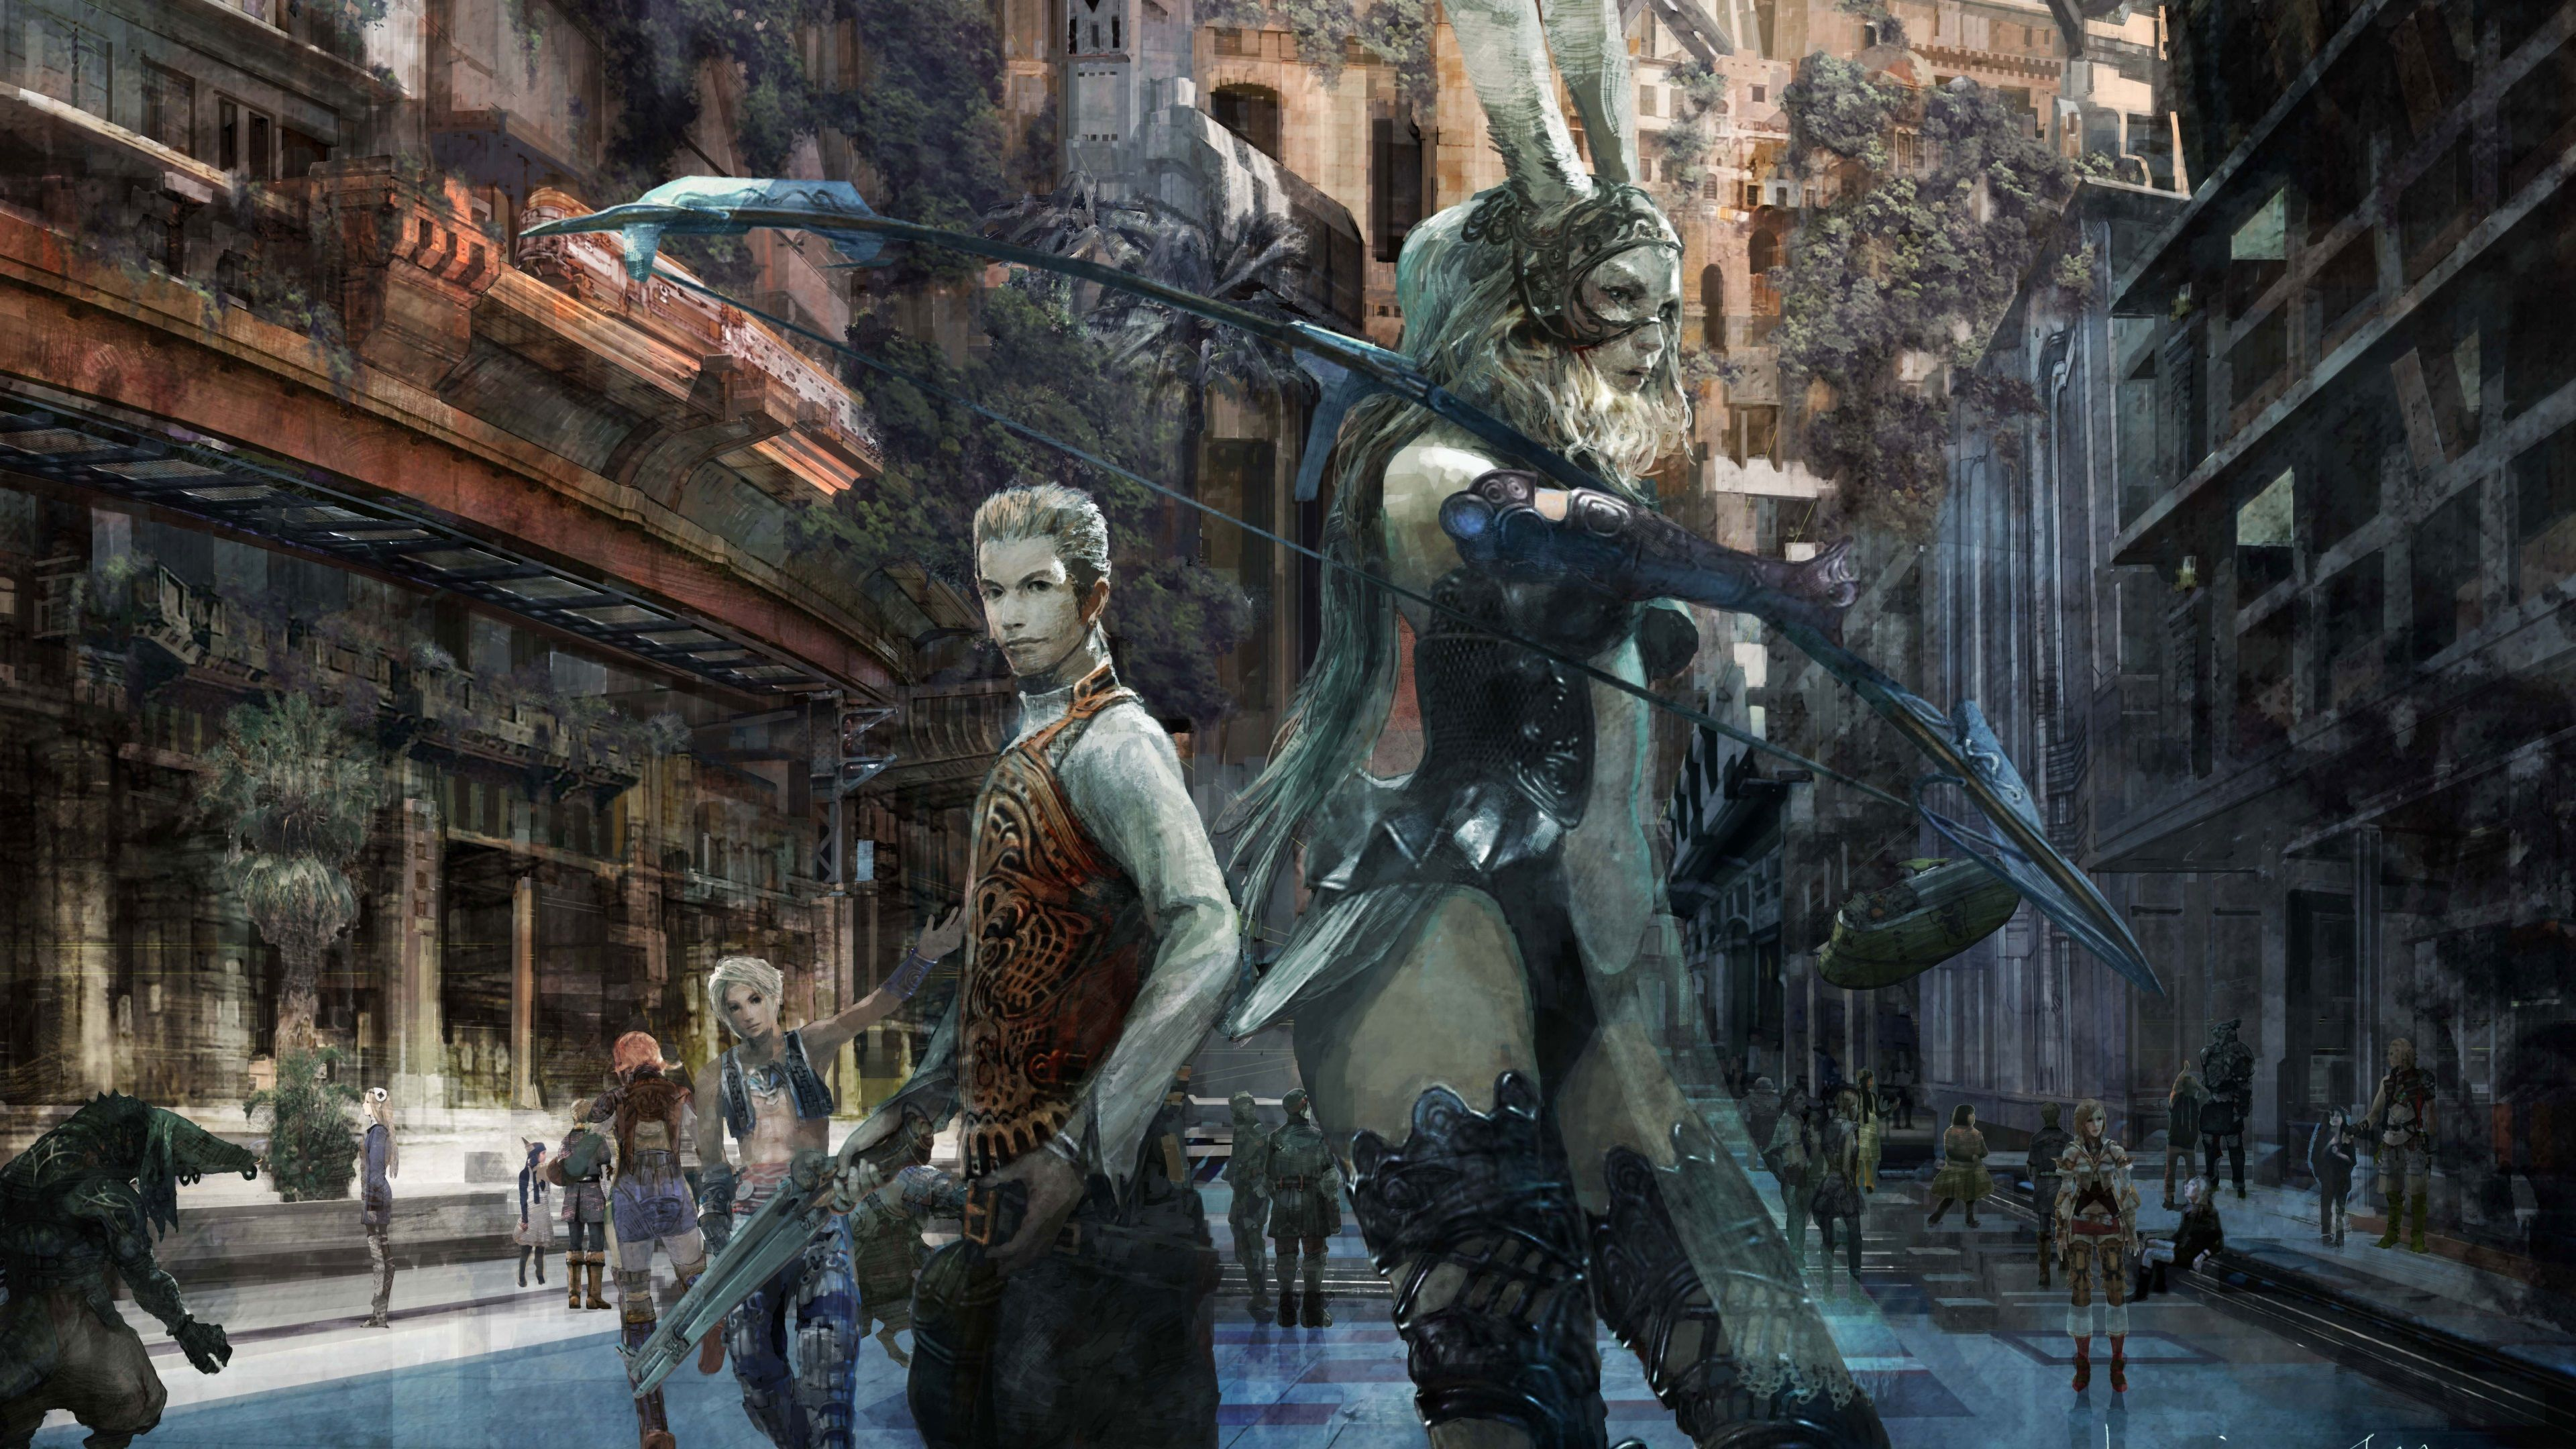 3840x2160 Final Fantasy Xii The Zodiac Age 4k Download Free Pc Wallpaper Hd Final Fantasy Xii Final Fantasy Final Fantasy Vii